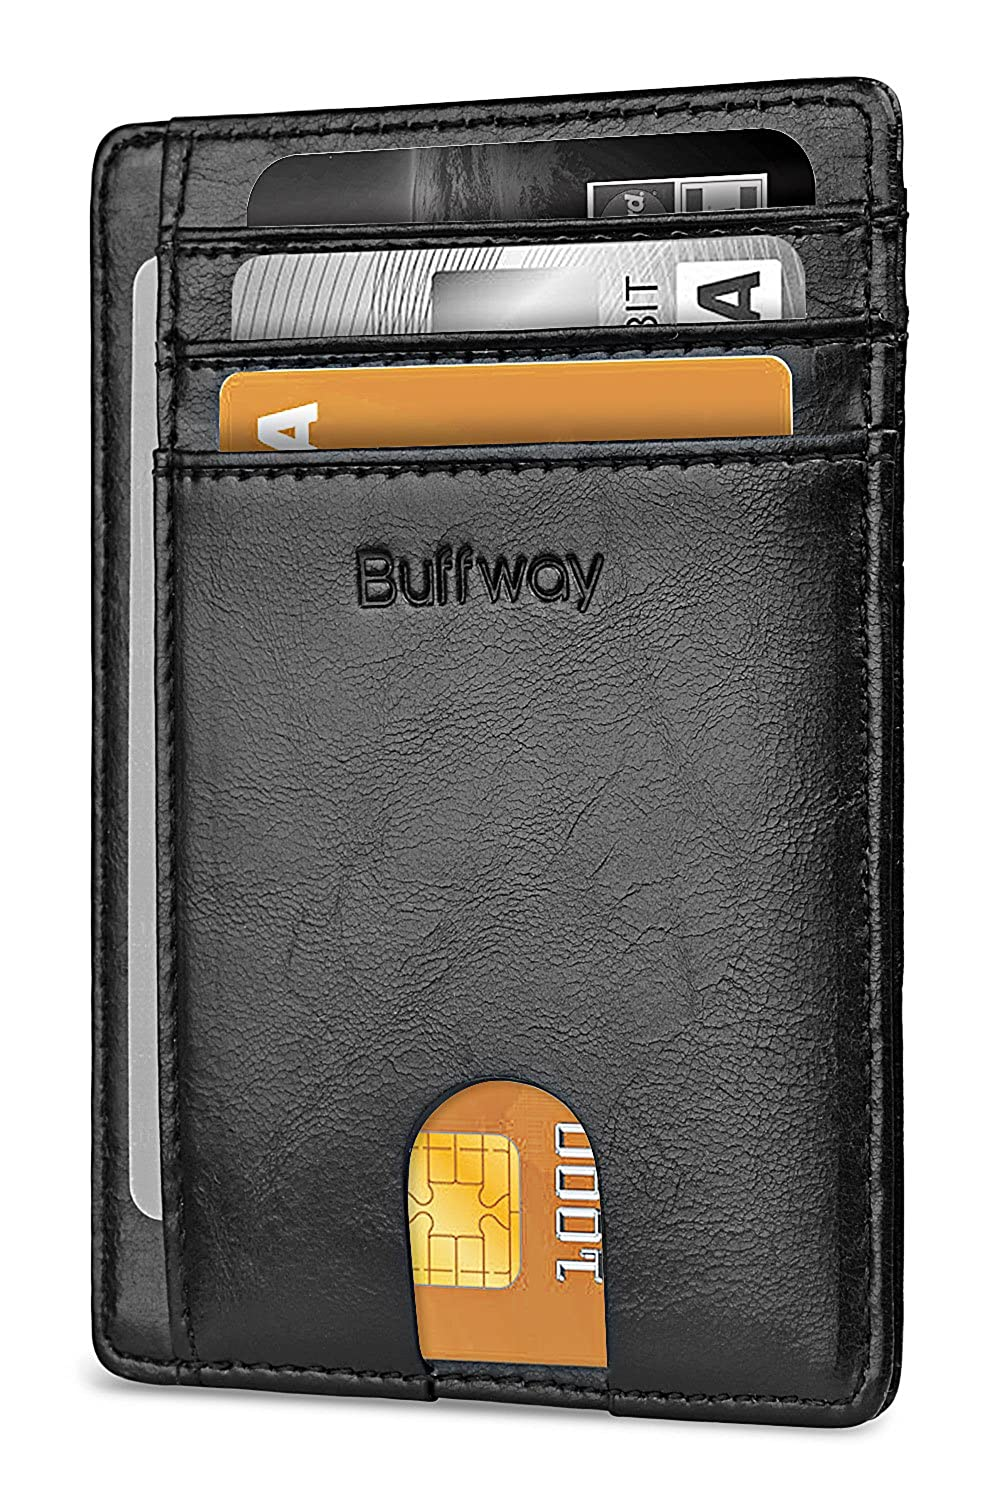 Buffway Slim Minimalist Front Pocket RFID Blocking Leather ...